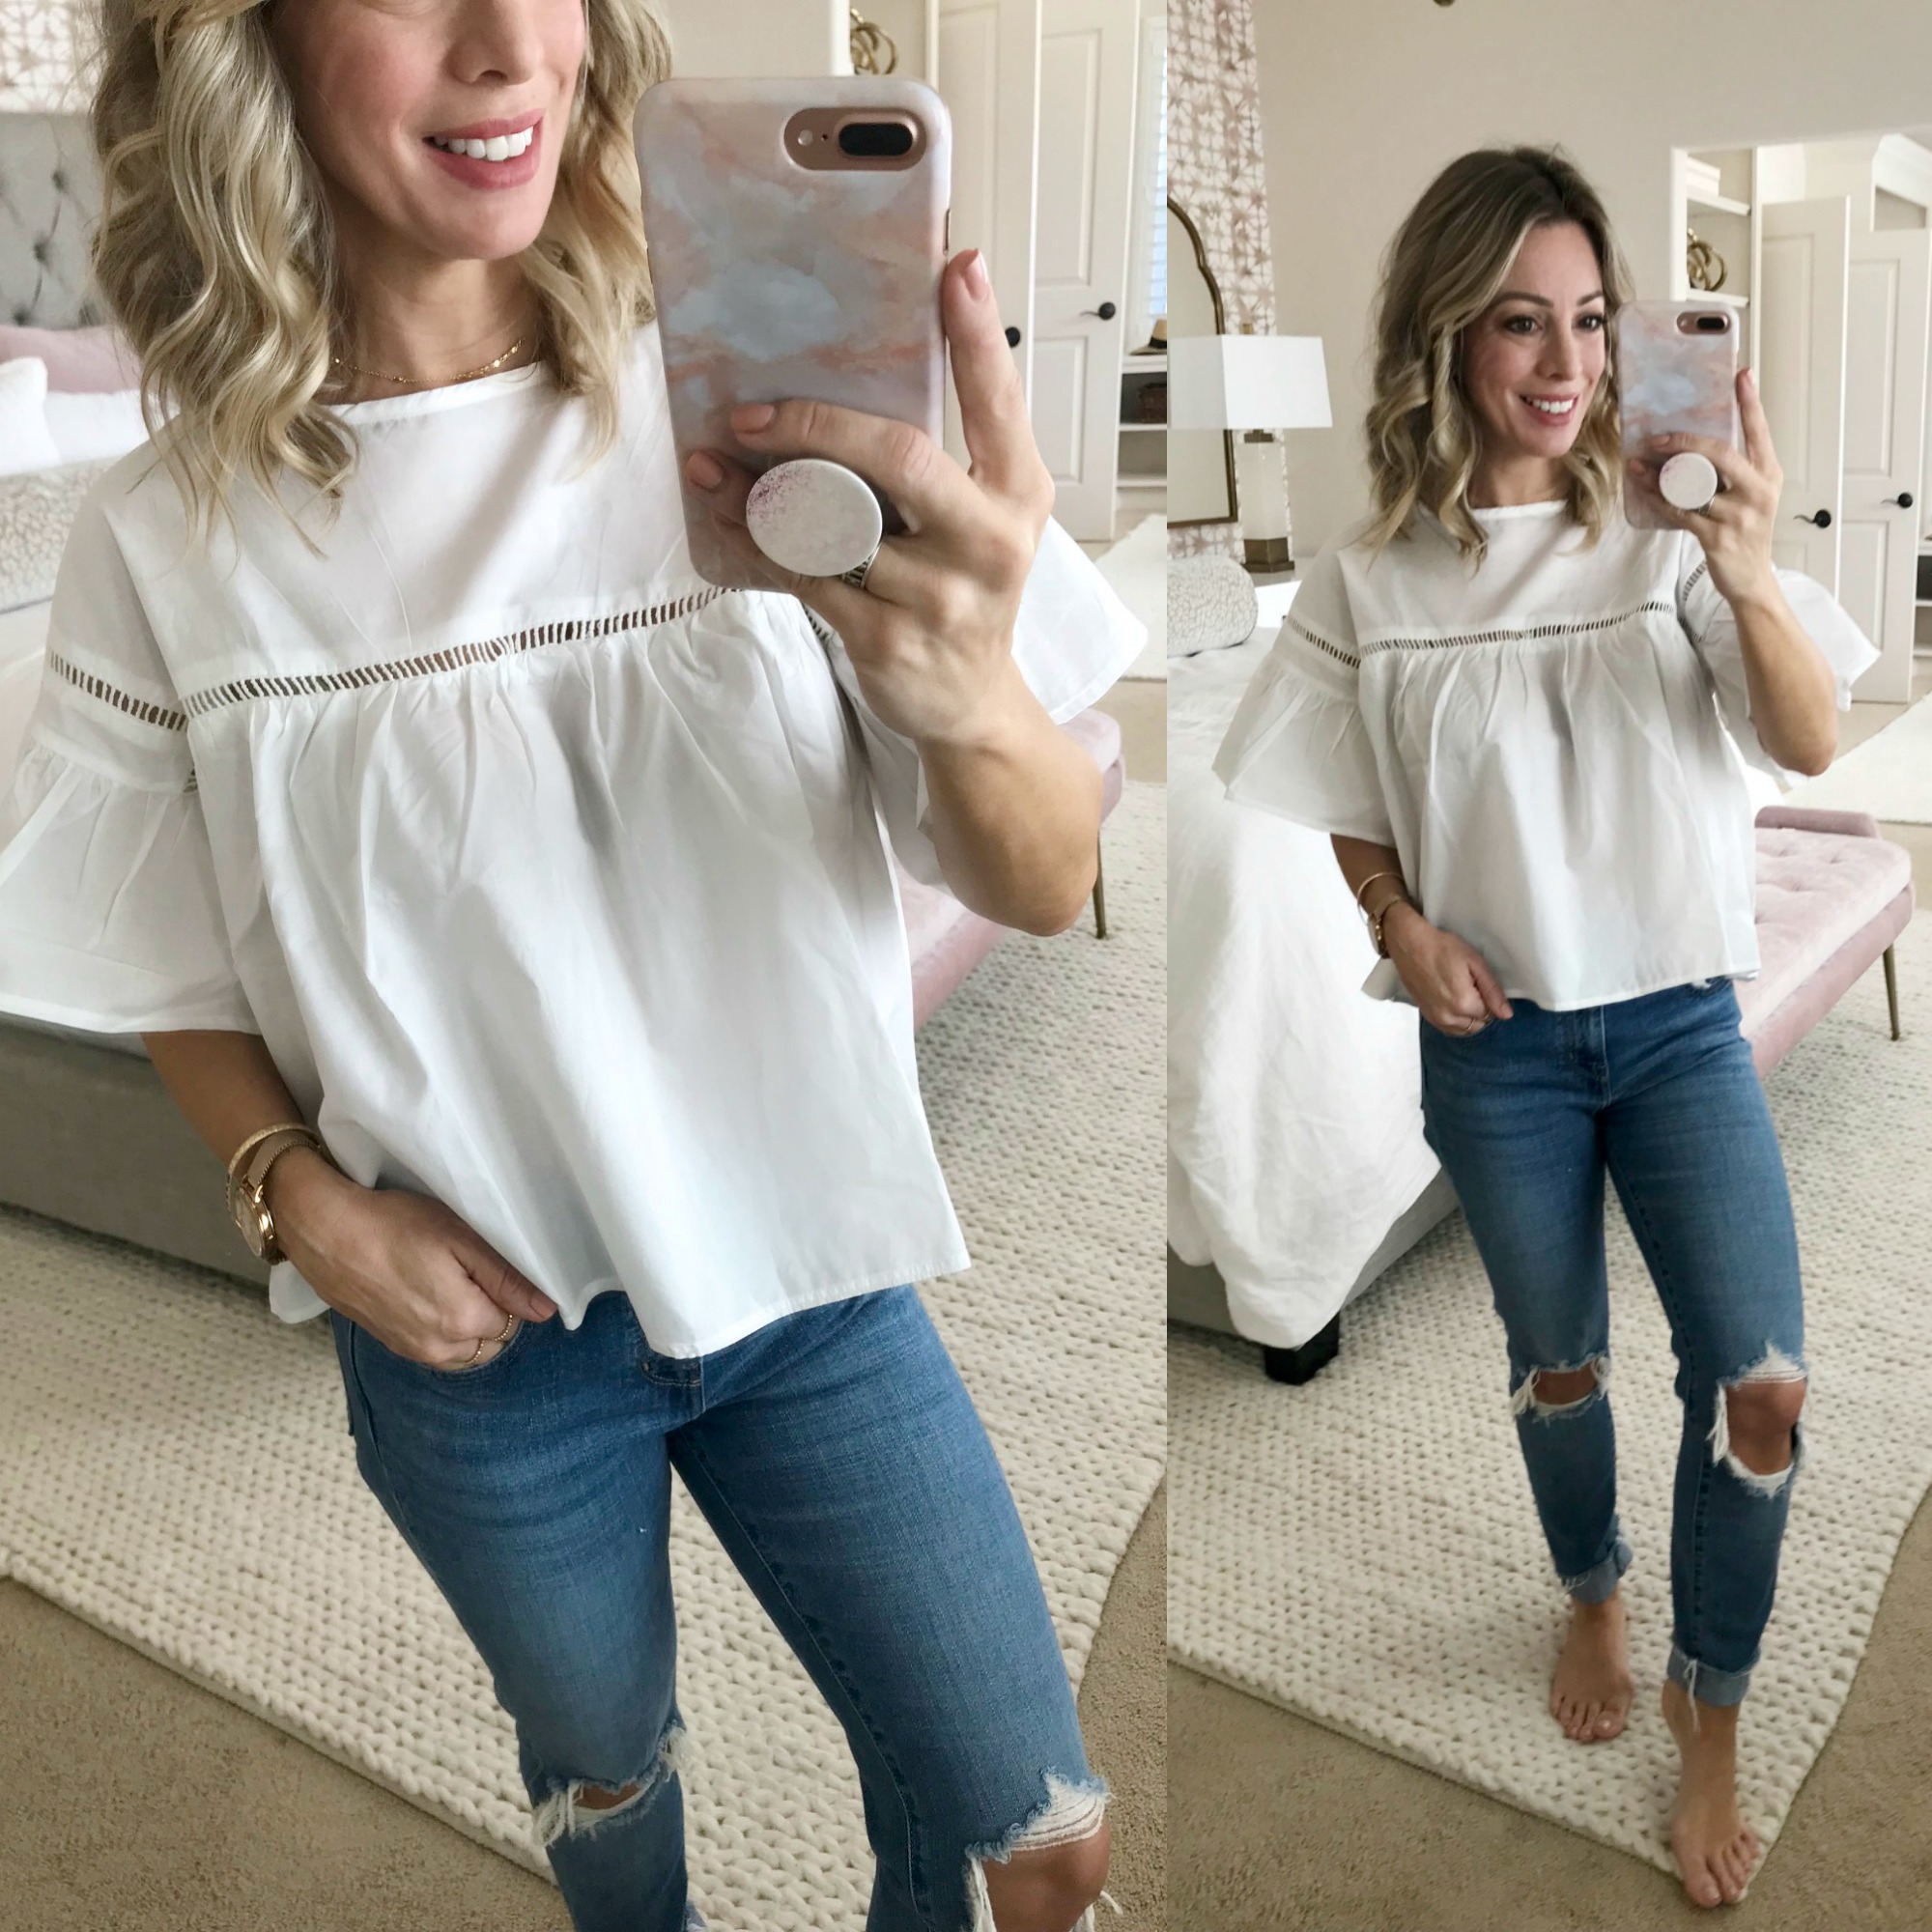 Amazon Fashion Haul - White Crop Blouse